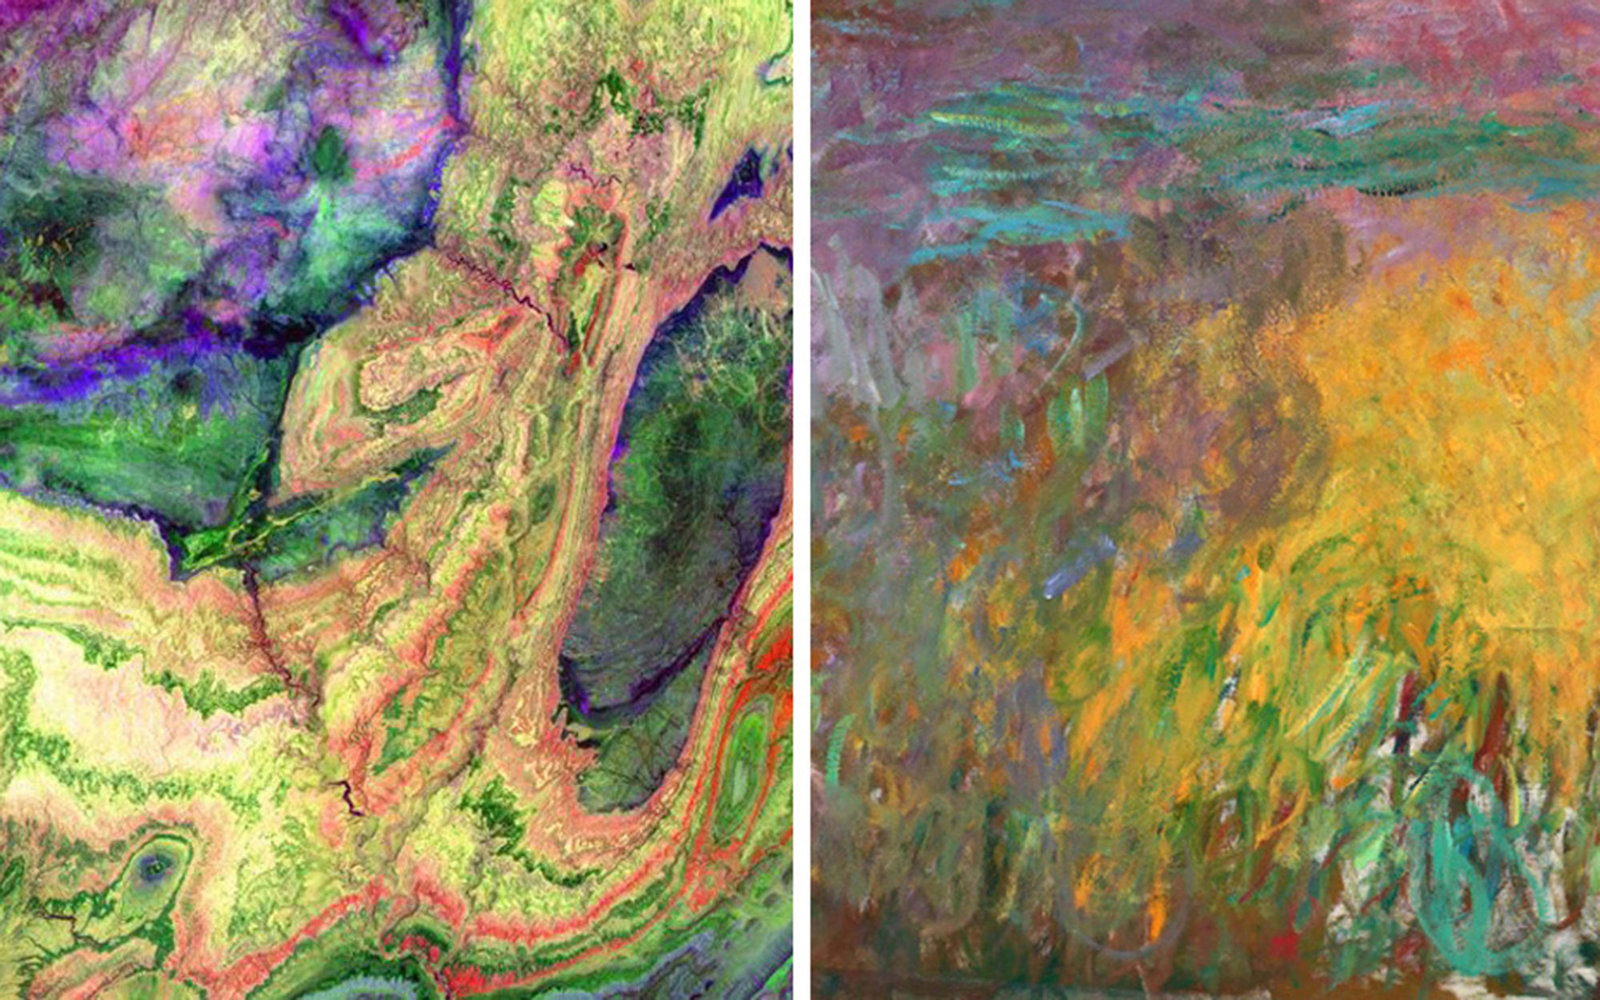 Pictured left: The The Little Atlas Mountains of Morocco on June 13, 2001; Pictured right: Claude Monet, Water Lilies, 1914-1926